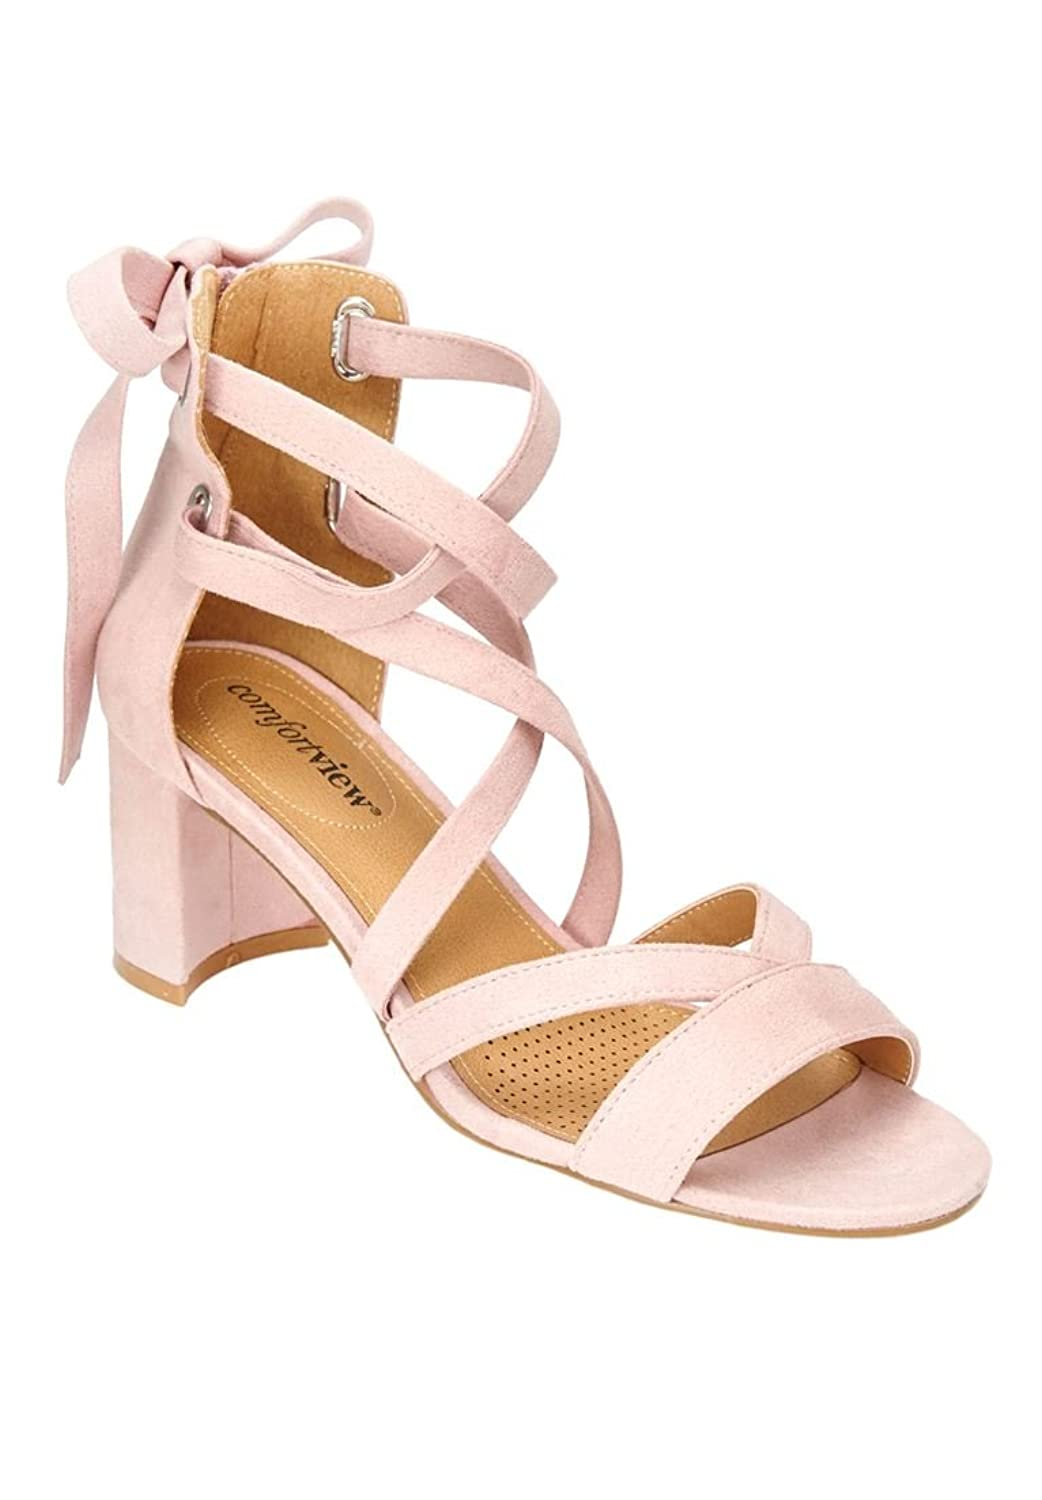 Women's Wide Rosana Sandals Rose Mist8 W